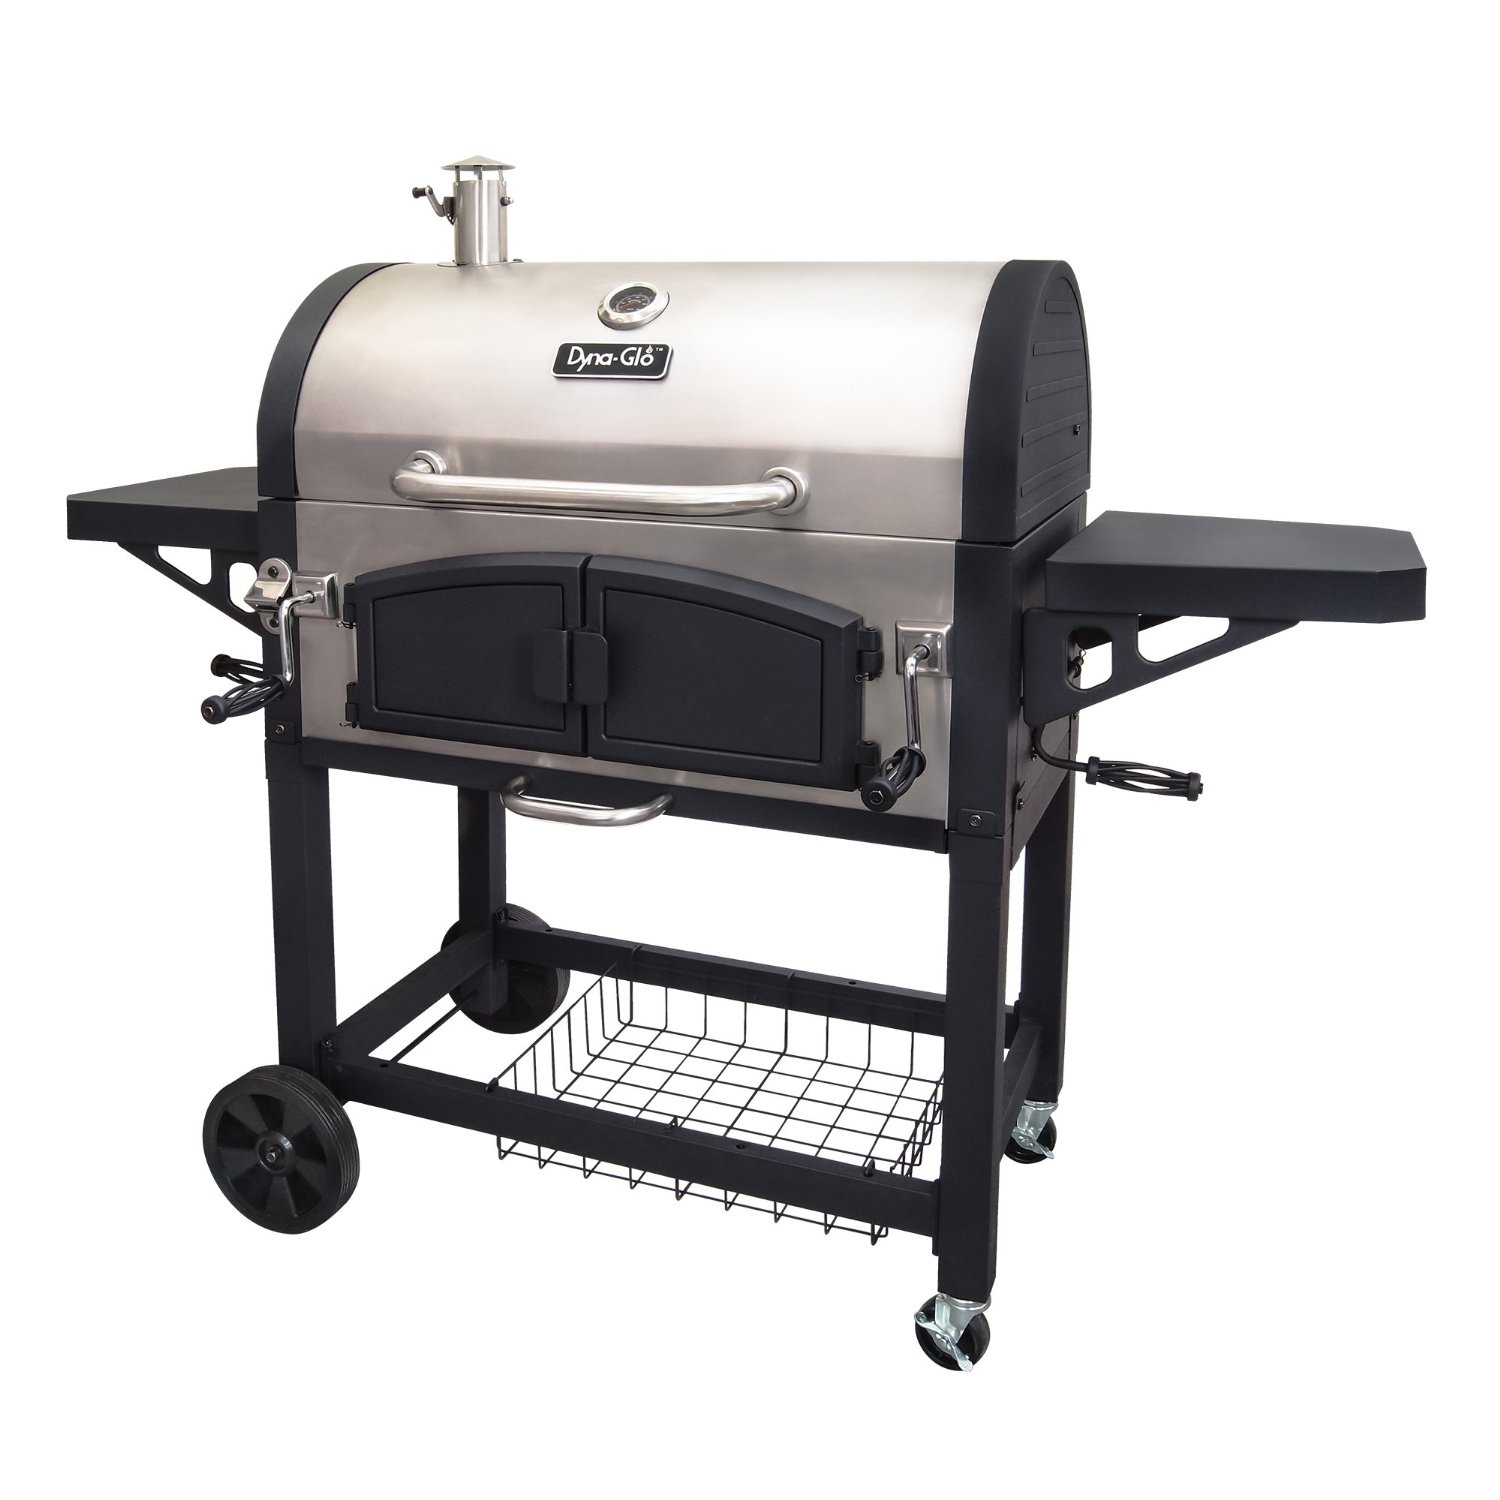 71xpm0 lyL. SL1500 10 Best Charcoal Grills 2021 - Home & Outdoor Charcoal Grill Reviews